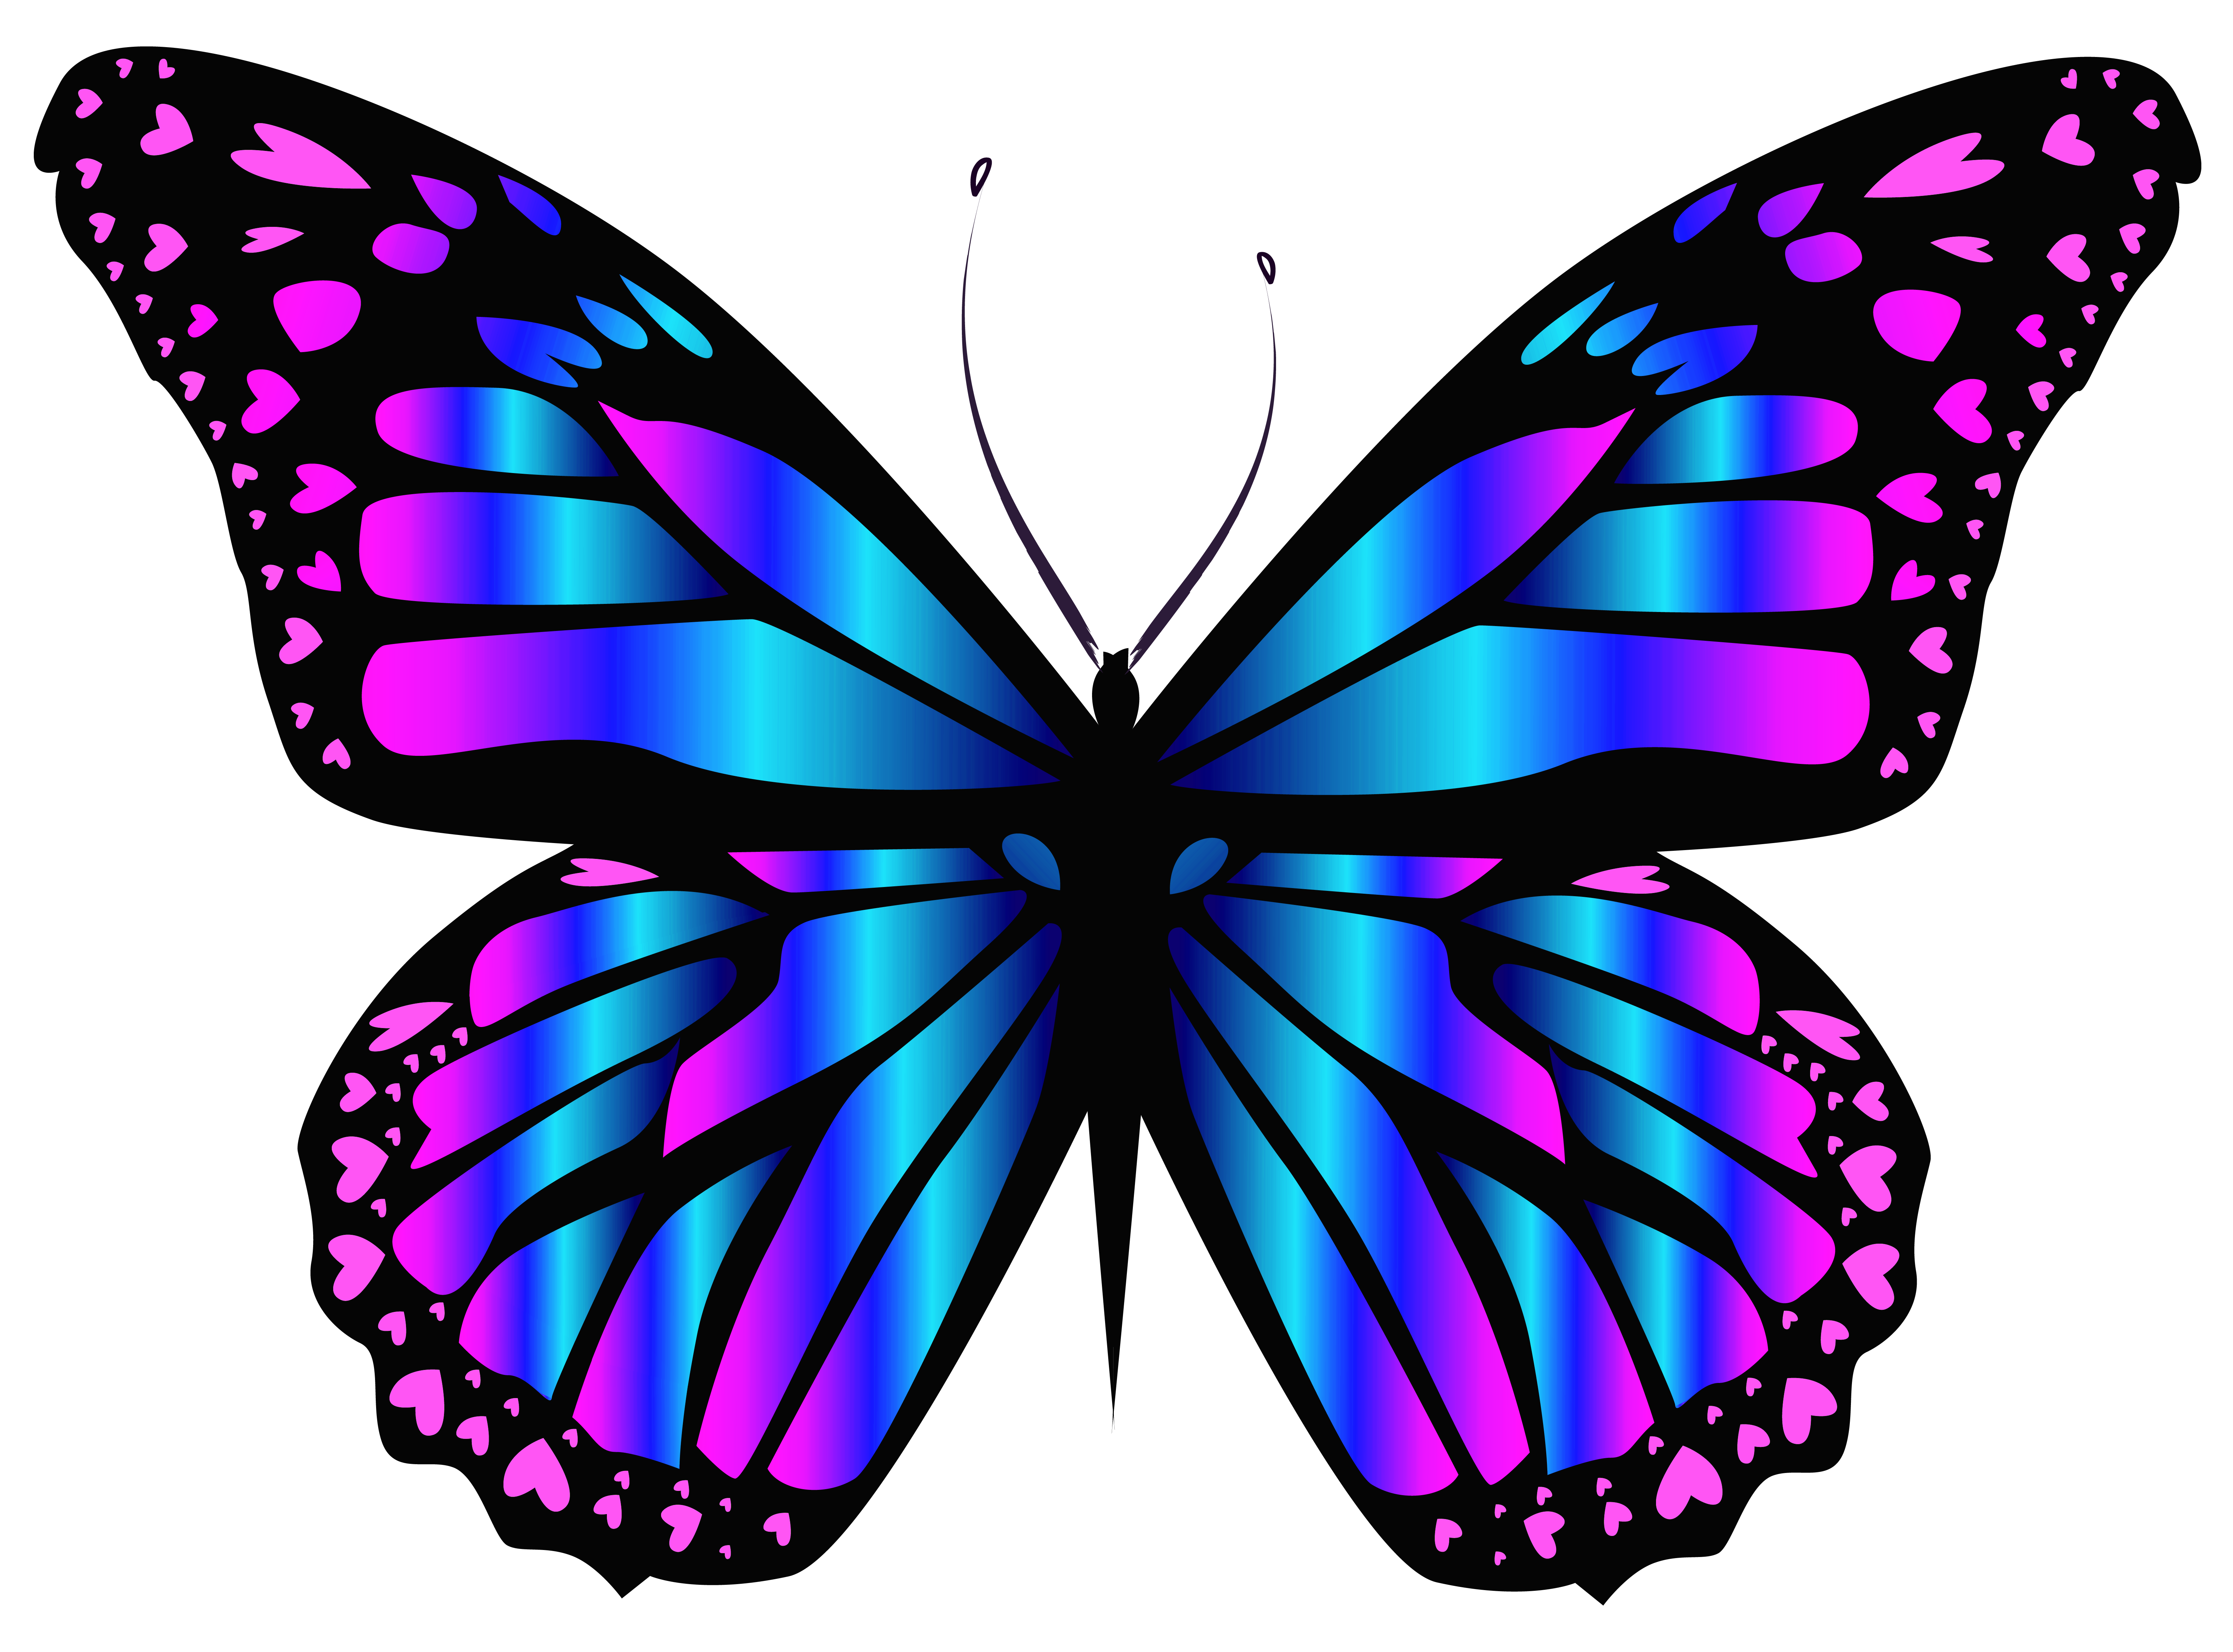 Butterfly clipart cross jpg freeuse download Free Clipart Flowers And Butterflies at GetDrawings.com | Free for ... jpg freeuse download